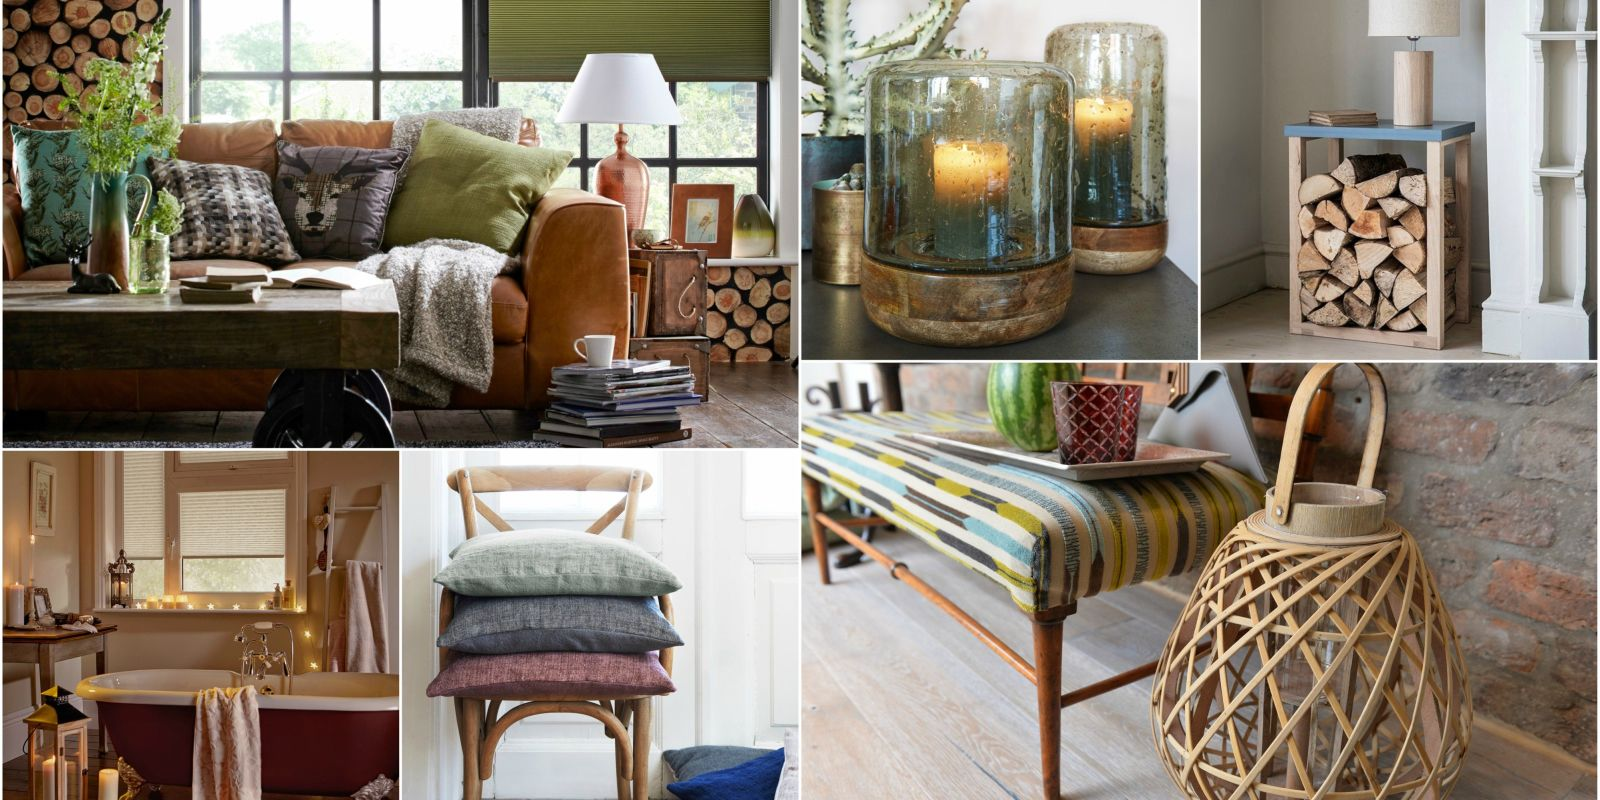 27 hygge inspired items for your home for Home design deko shopping